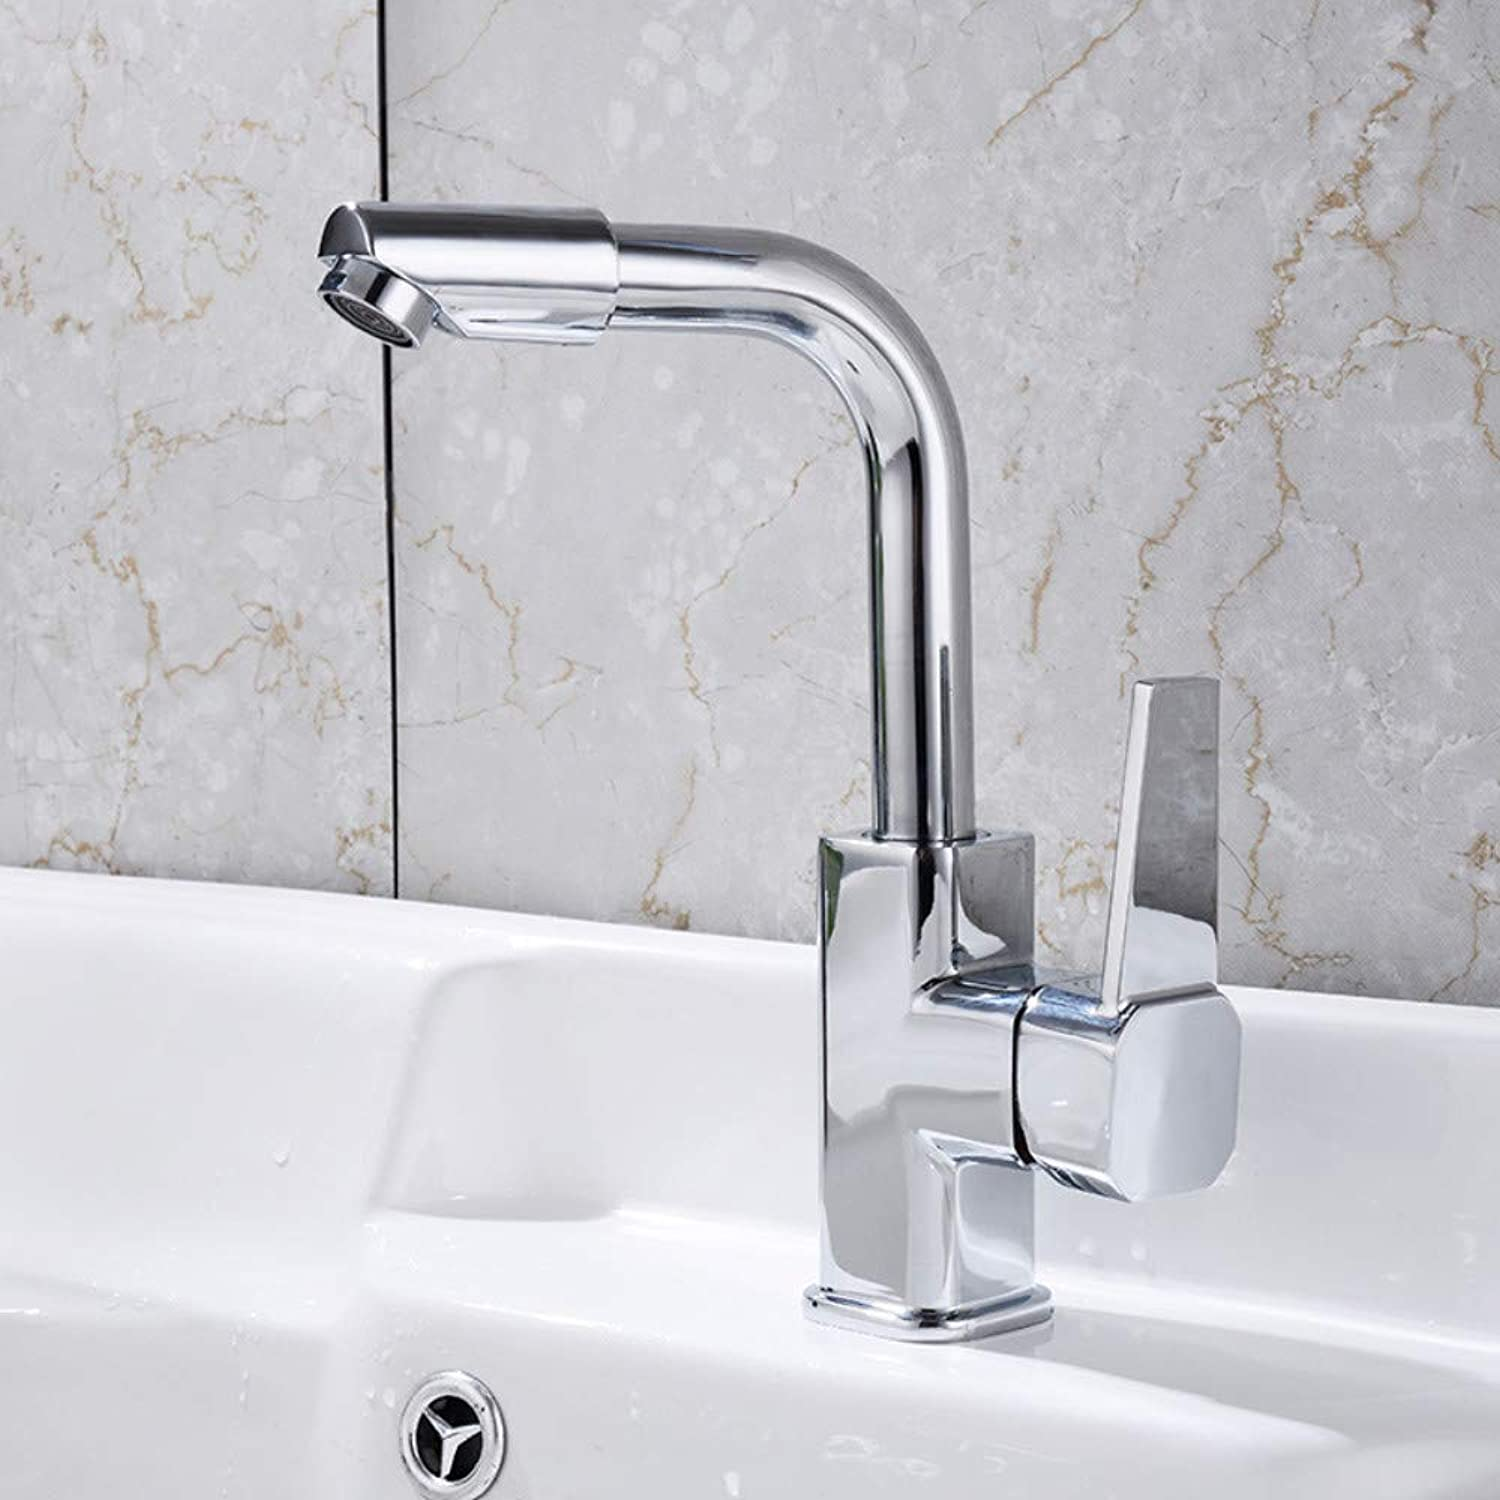 Kitchen Bathroom Sink Taps bathroom Washbasin redating Faucet Hot And Cold Water Bathroom Cabinet Faucet Plumbing Hardware Basin Faucet